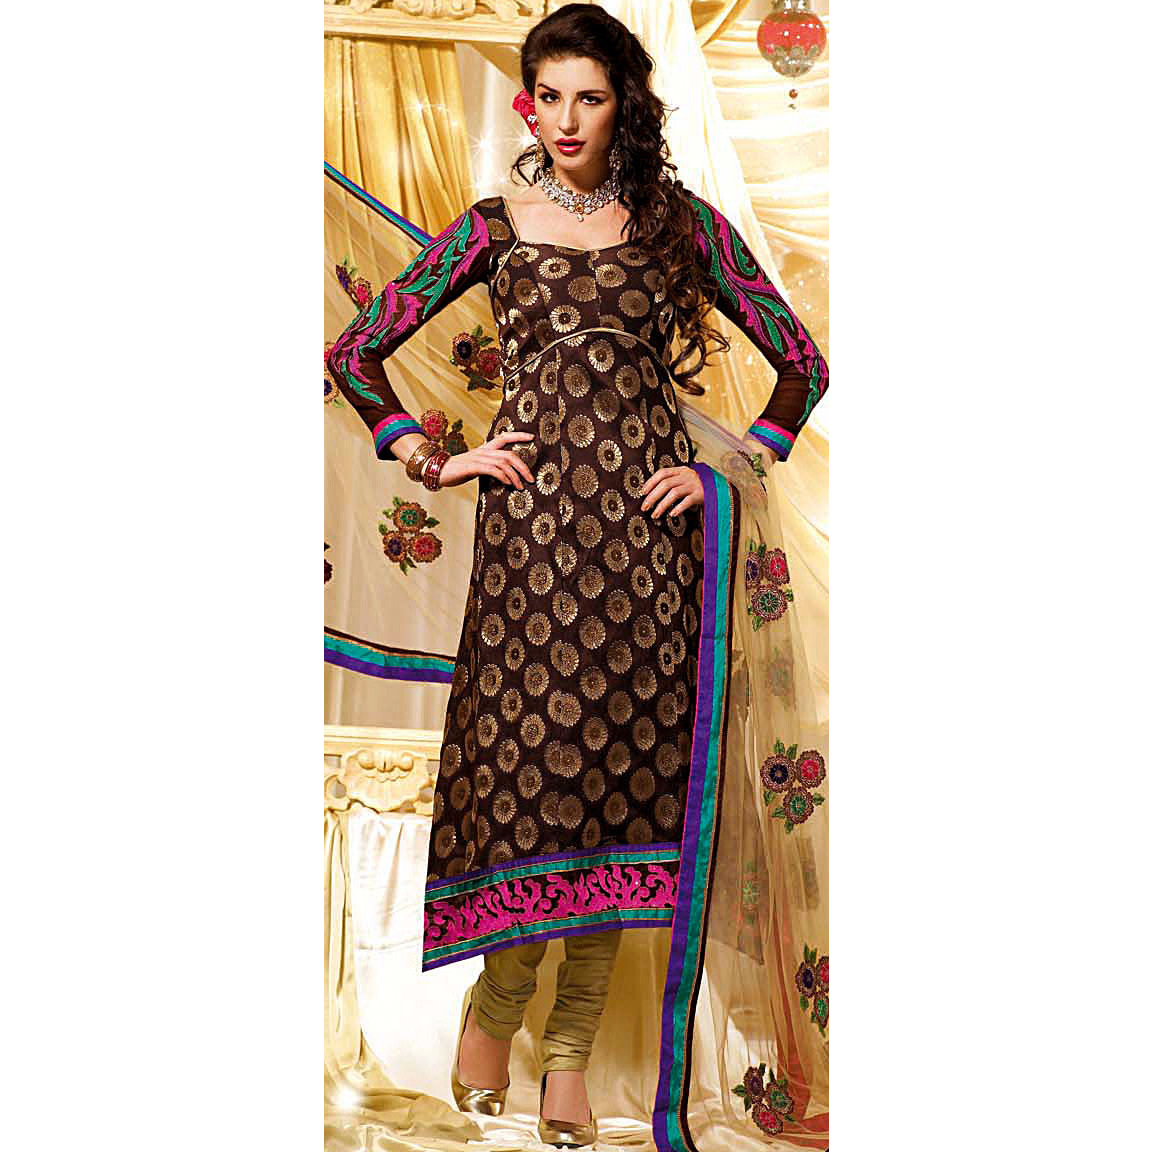 Seal-Brown Designer Choodidaar Suit with Brocaded Kameez and Embrodiered Patch Border